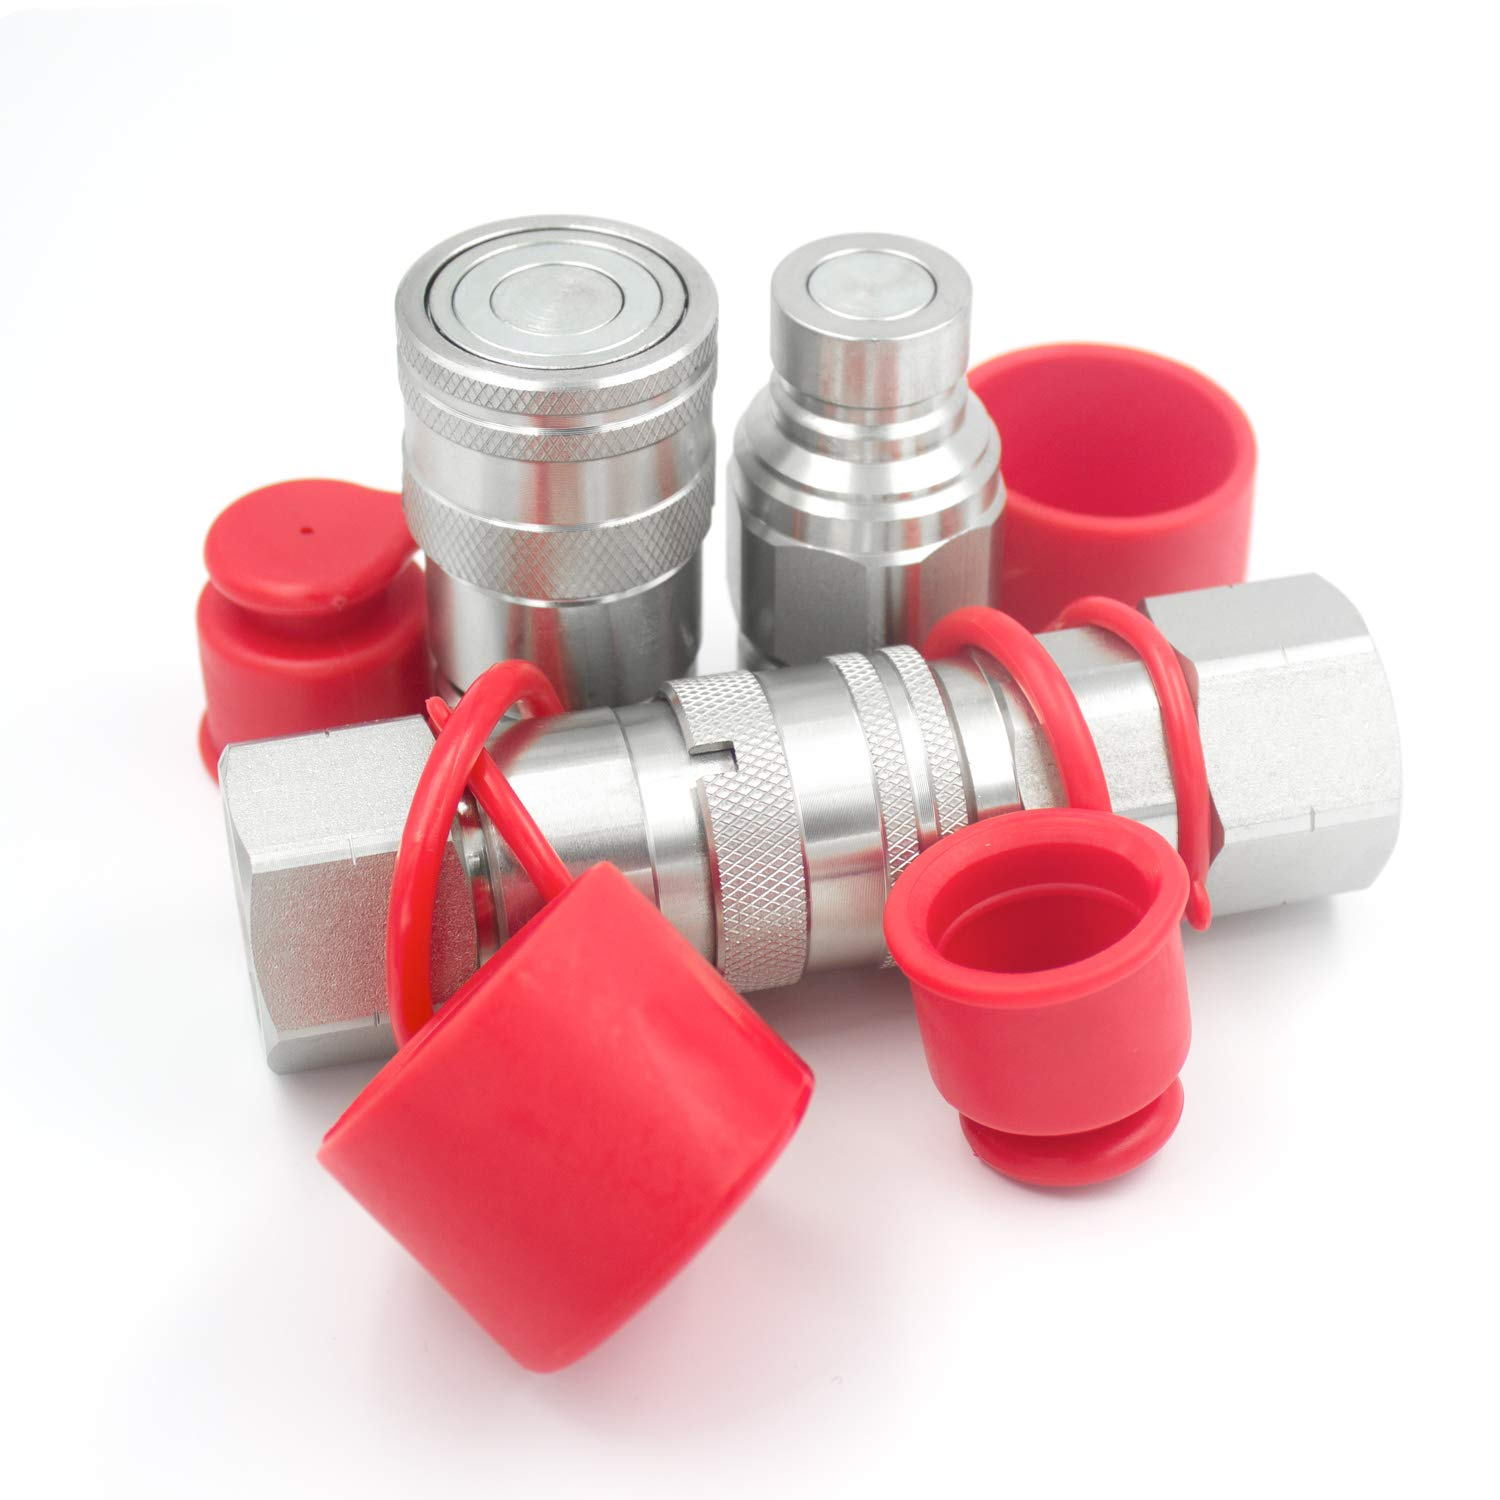 2 Sets 3/4'' NPT Thread 1/2'' Body Size ISO16028 Flat Face Skid Steer Loader Quick Connector Coupler Coupling with Dust Caps by AKJIA Electronics